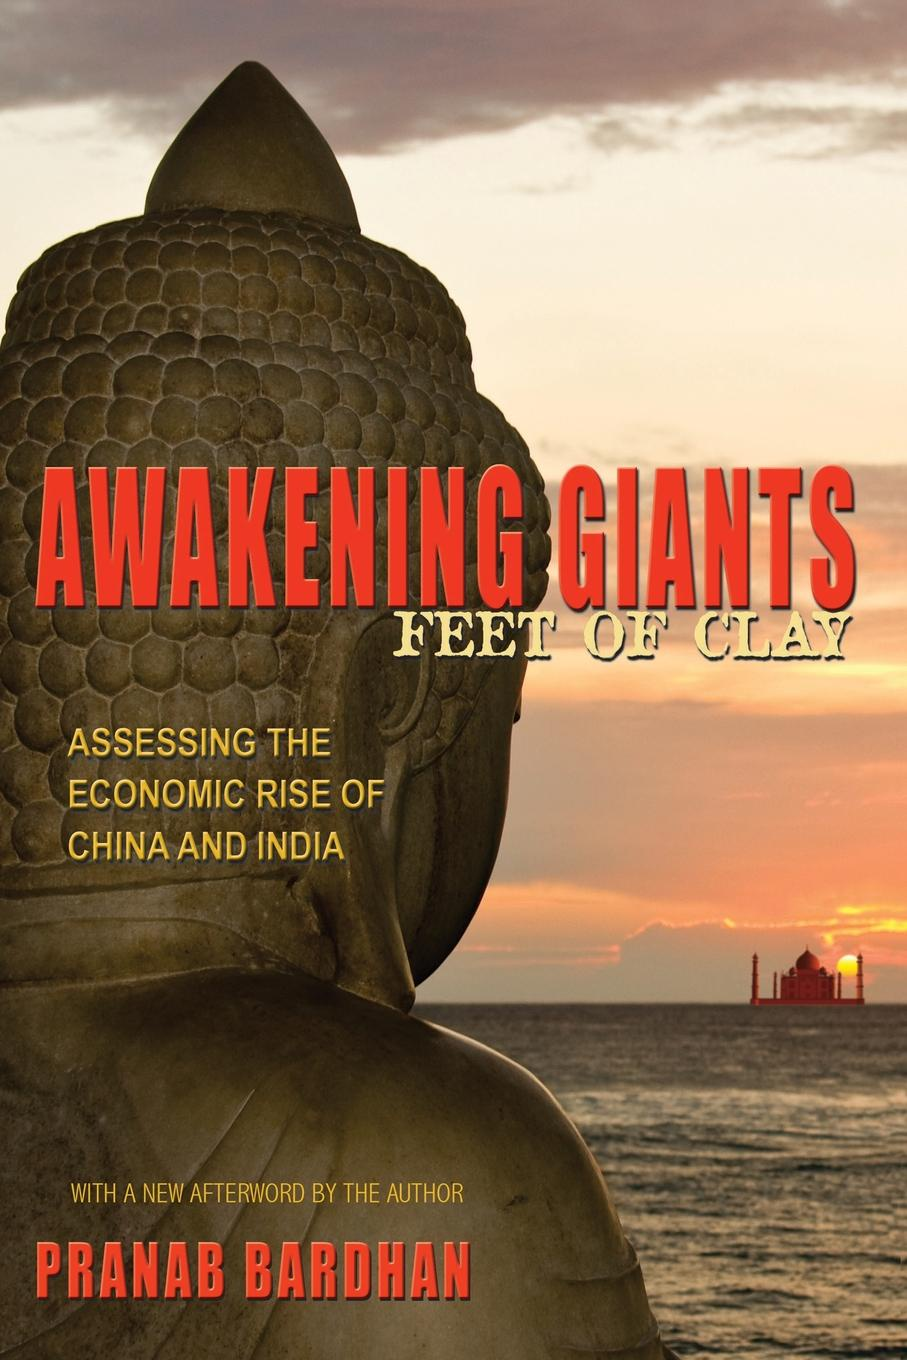 Pranab Bardhan Awakening Giants, Feet of Clay. Assessing the Economic Rise of China and India feet of clay